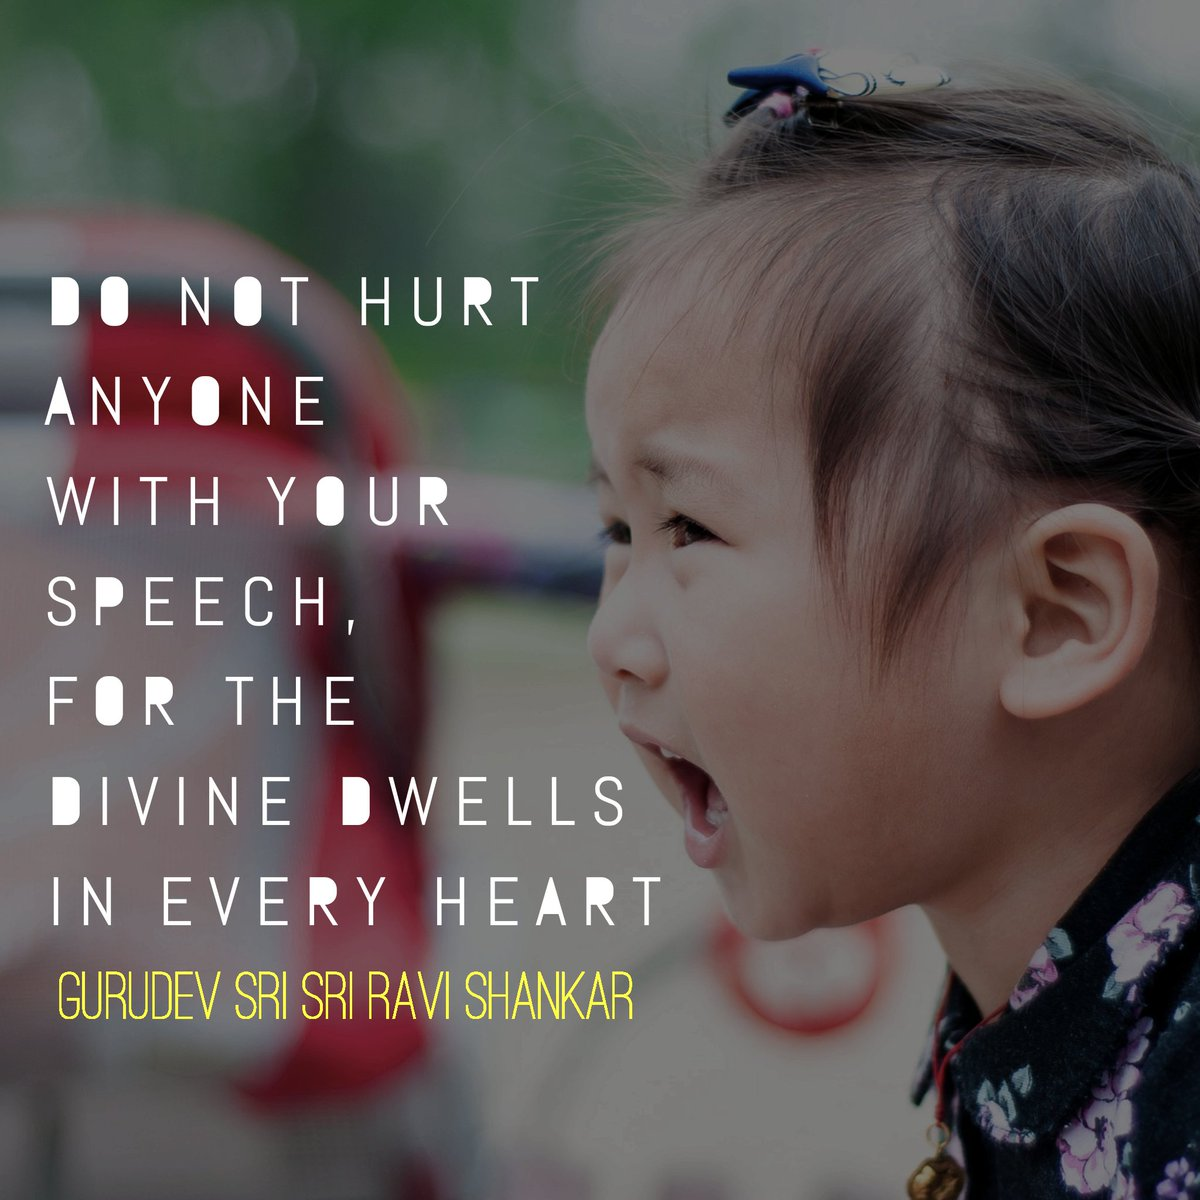 Hurt feelings quote Do not hurt anyone with your speech, for the divine dwells in every heart.